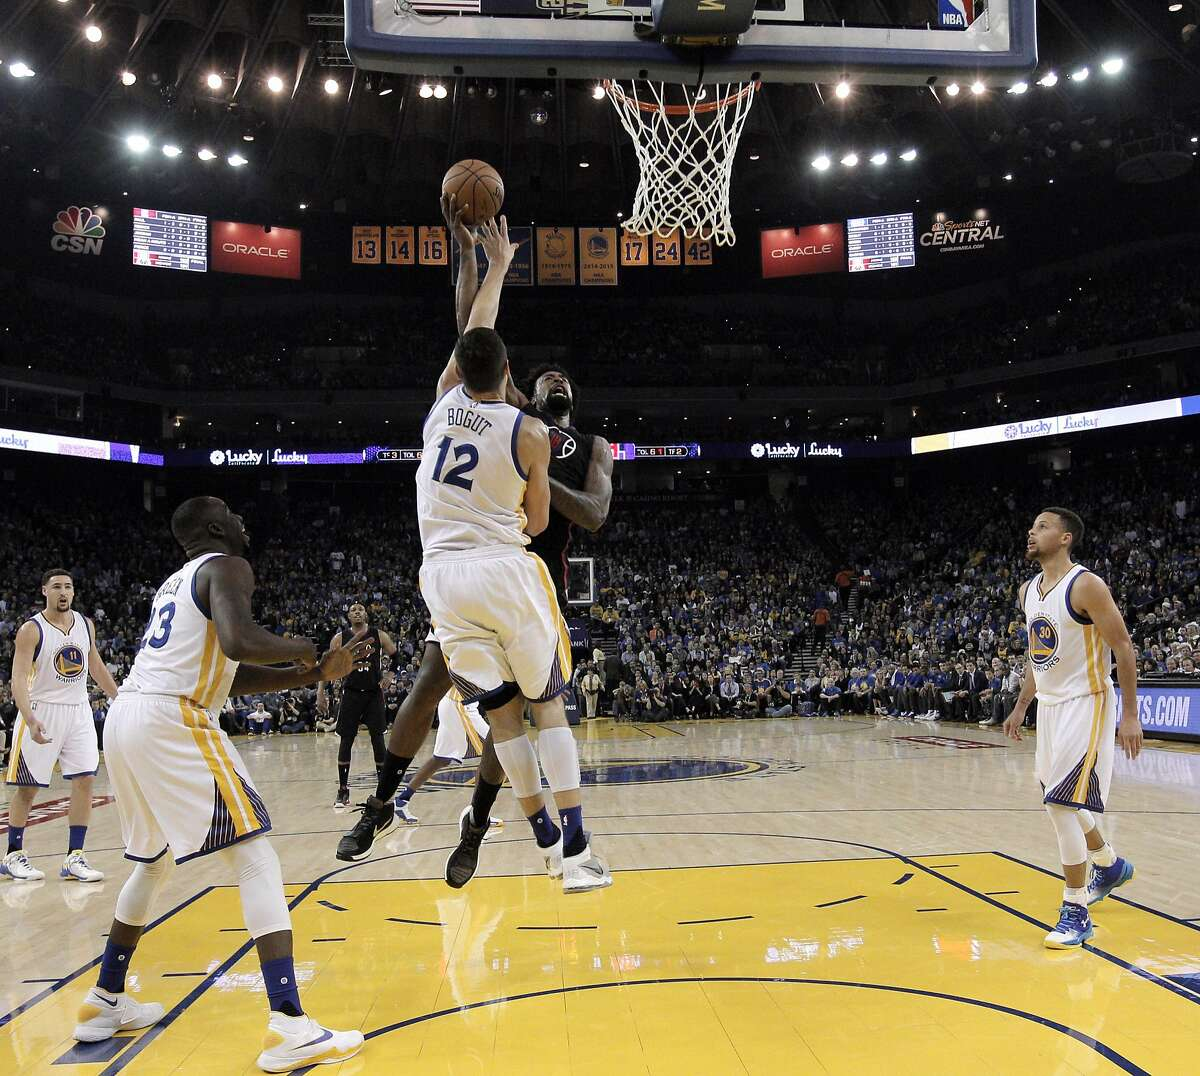 Deandre Jordan (6) puts a shot up over Andrew Bogut (12) in the first half as the Golden State Warriors played the Los Angeles Clippers at Oracle Arena in Oakland, Calif., on Wednesday, March 23, 2016.